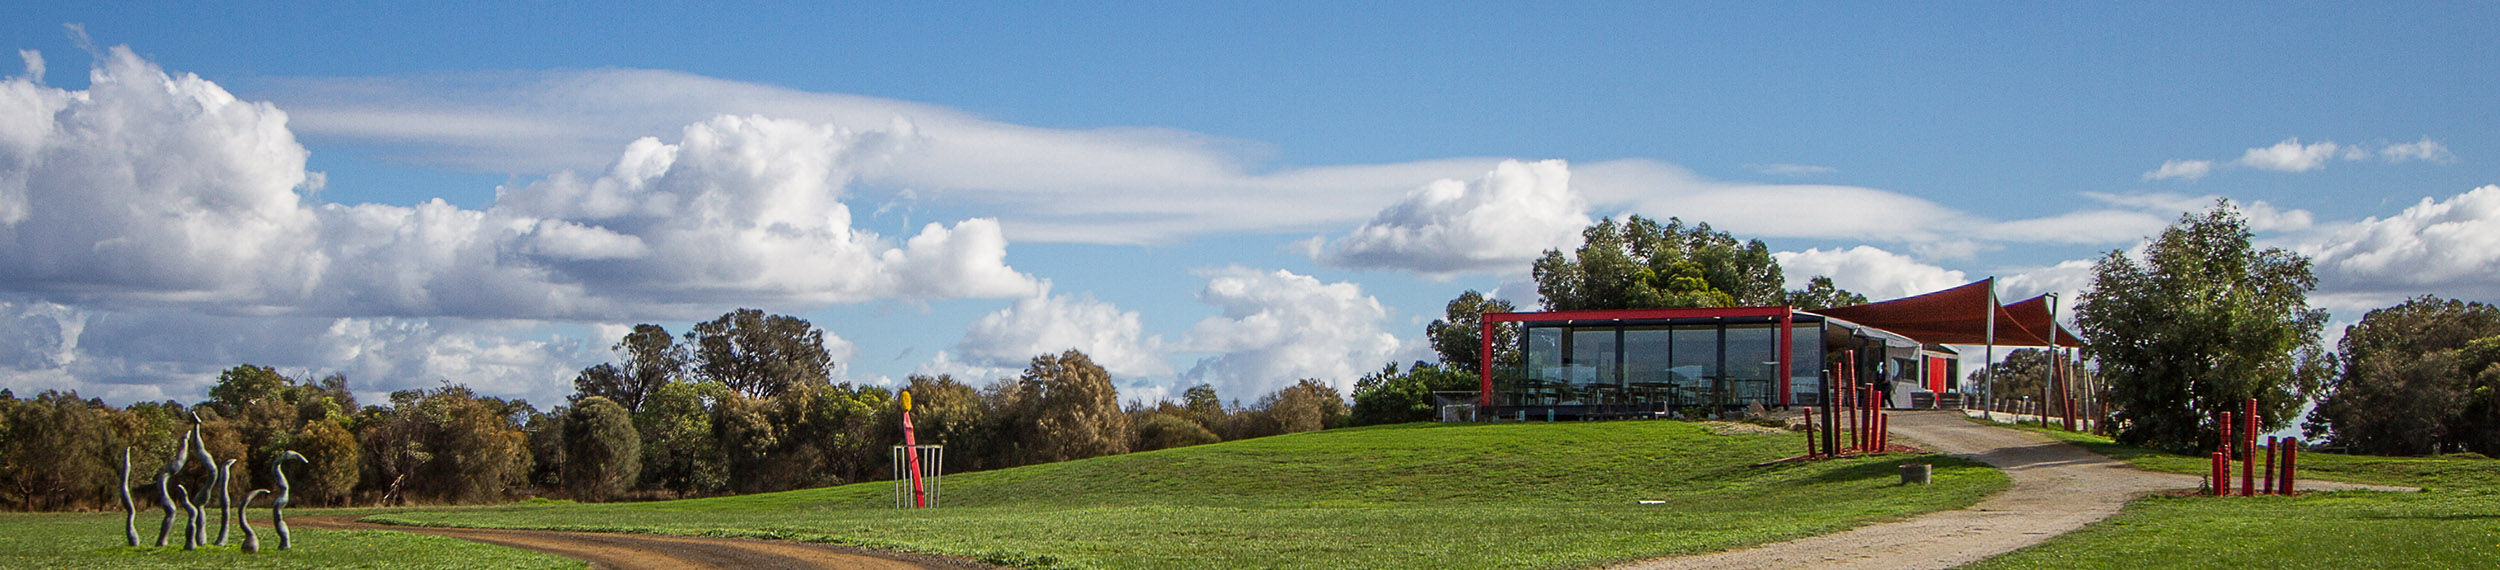 Wide shot of Little Red Fox Eatery and the sculptures across the landscape